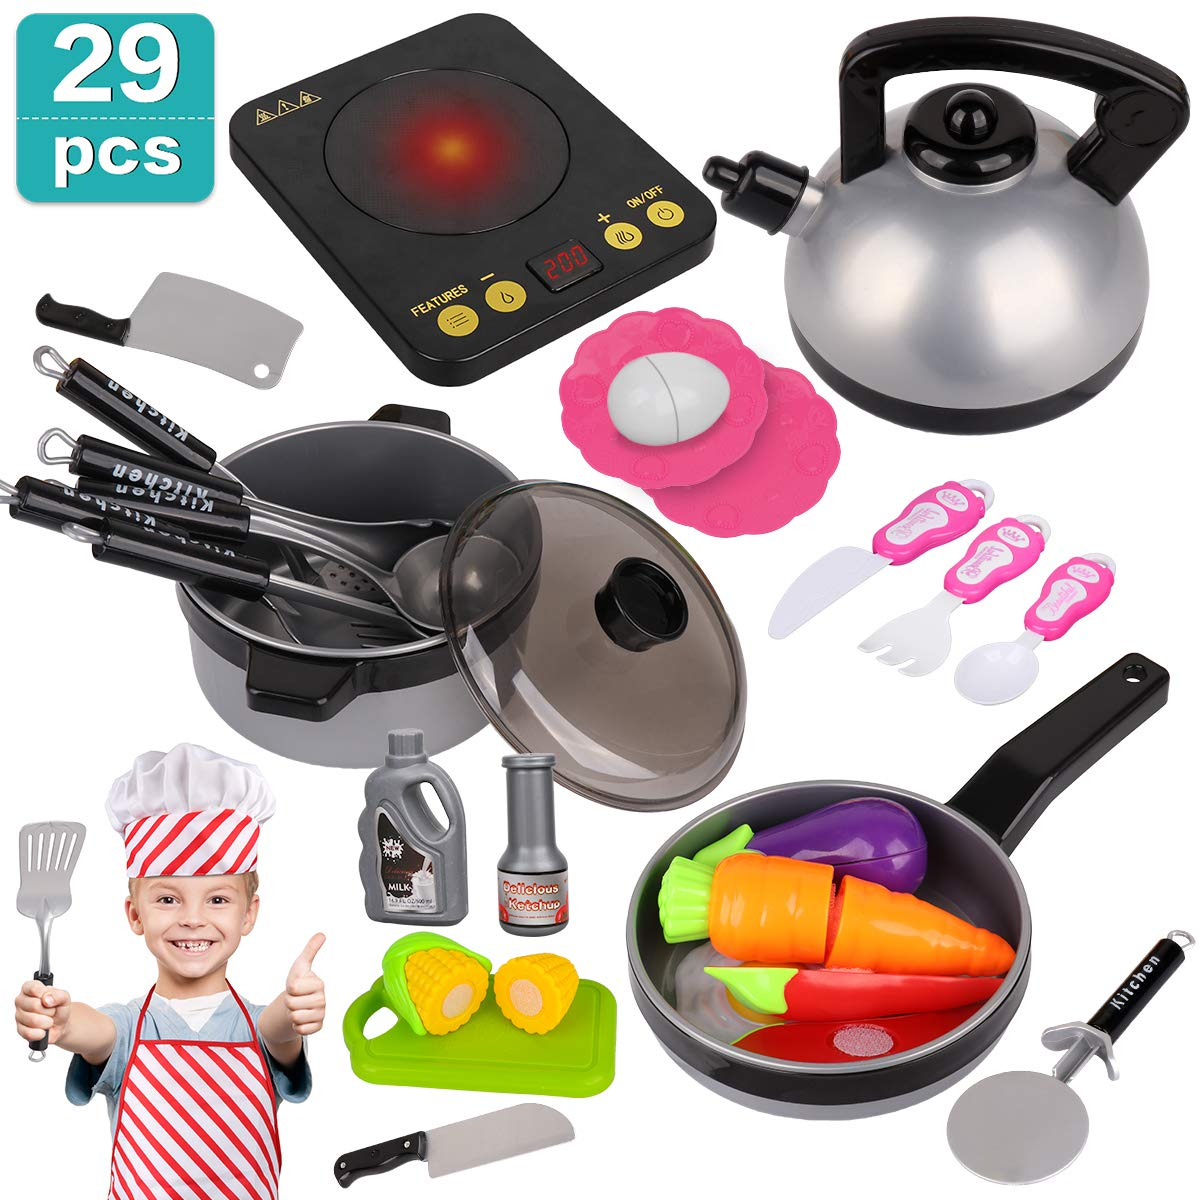 Kids Kitchen Pretend Play Set - 29Pcs Kitchen Toys Including Induction Cooker with Light Sound, Apron&Chef Hat, Cookware Utensils, Cutting Food Playset Accessories for Toddlers Girls Boy Birthday Gift by Meland